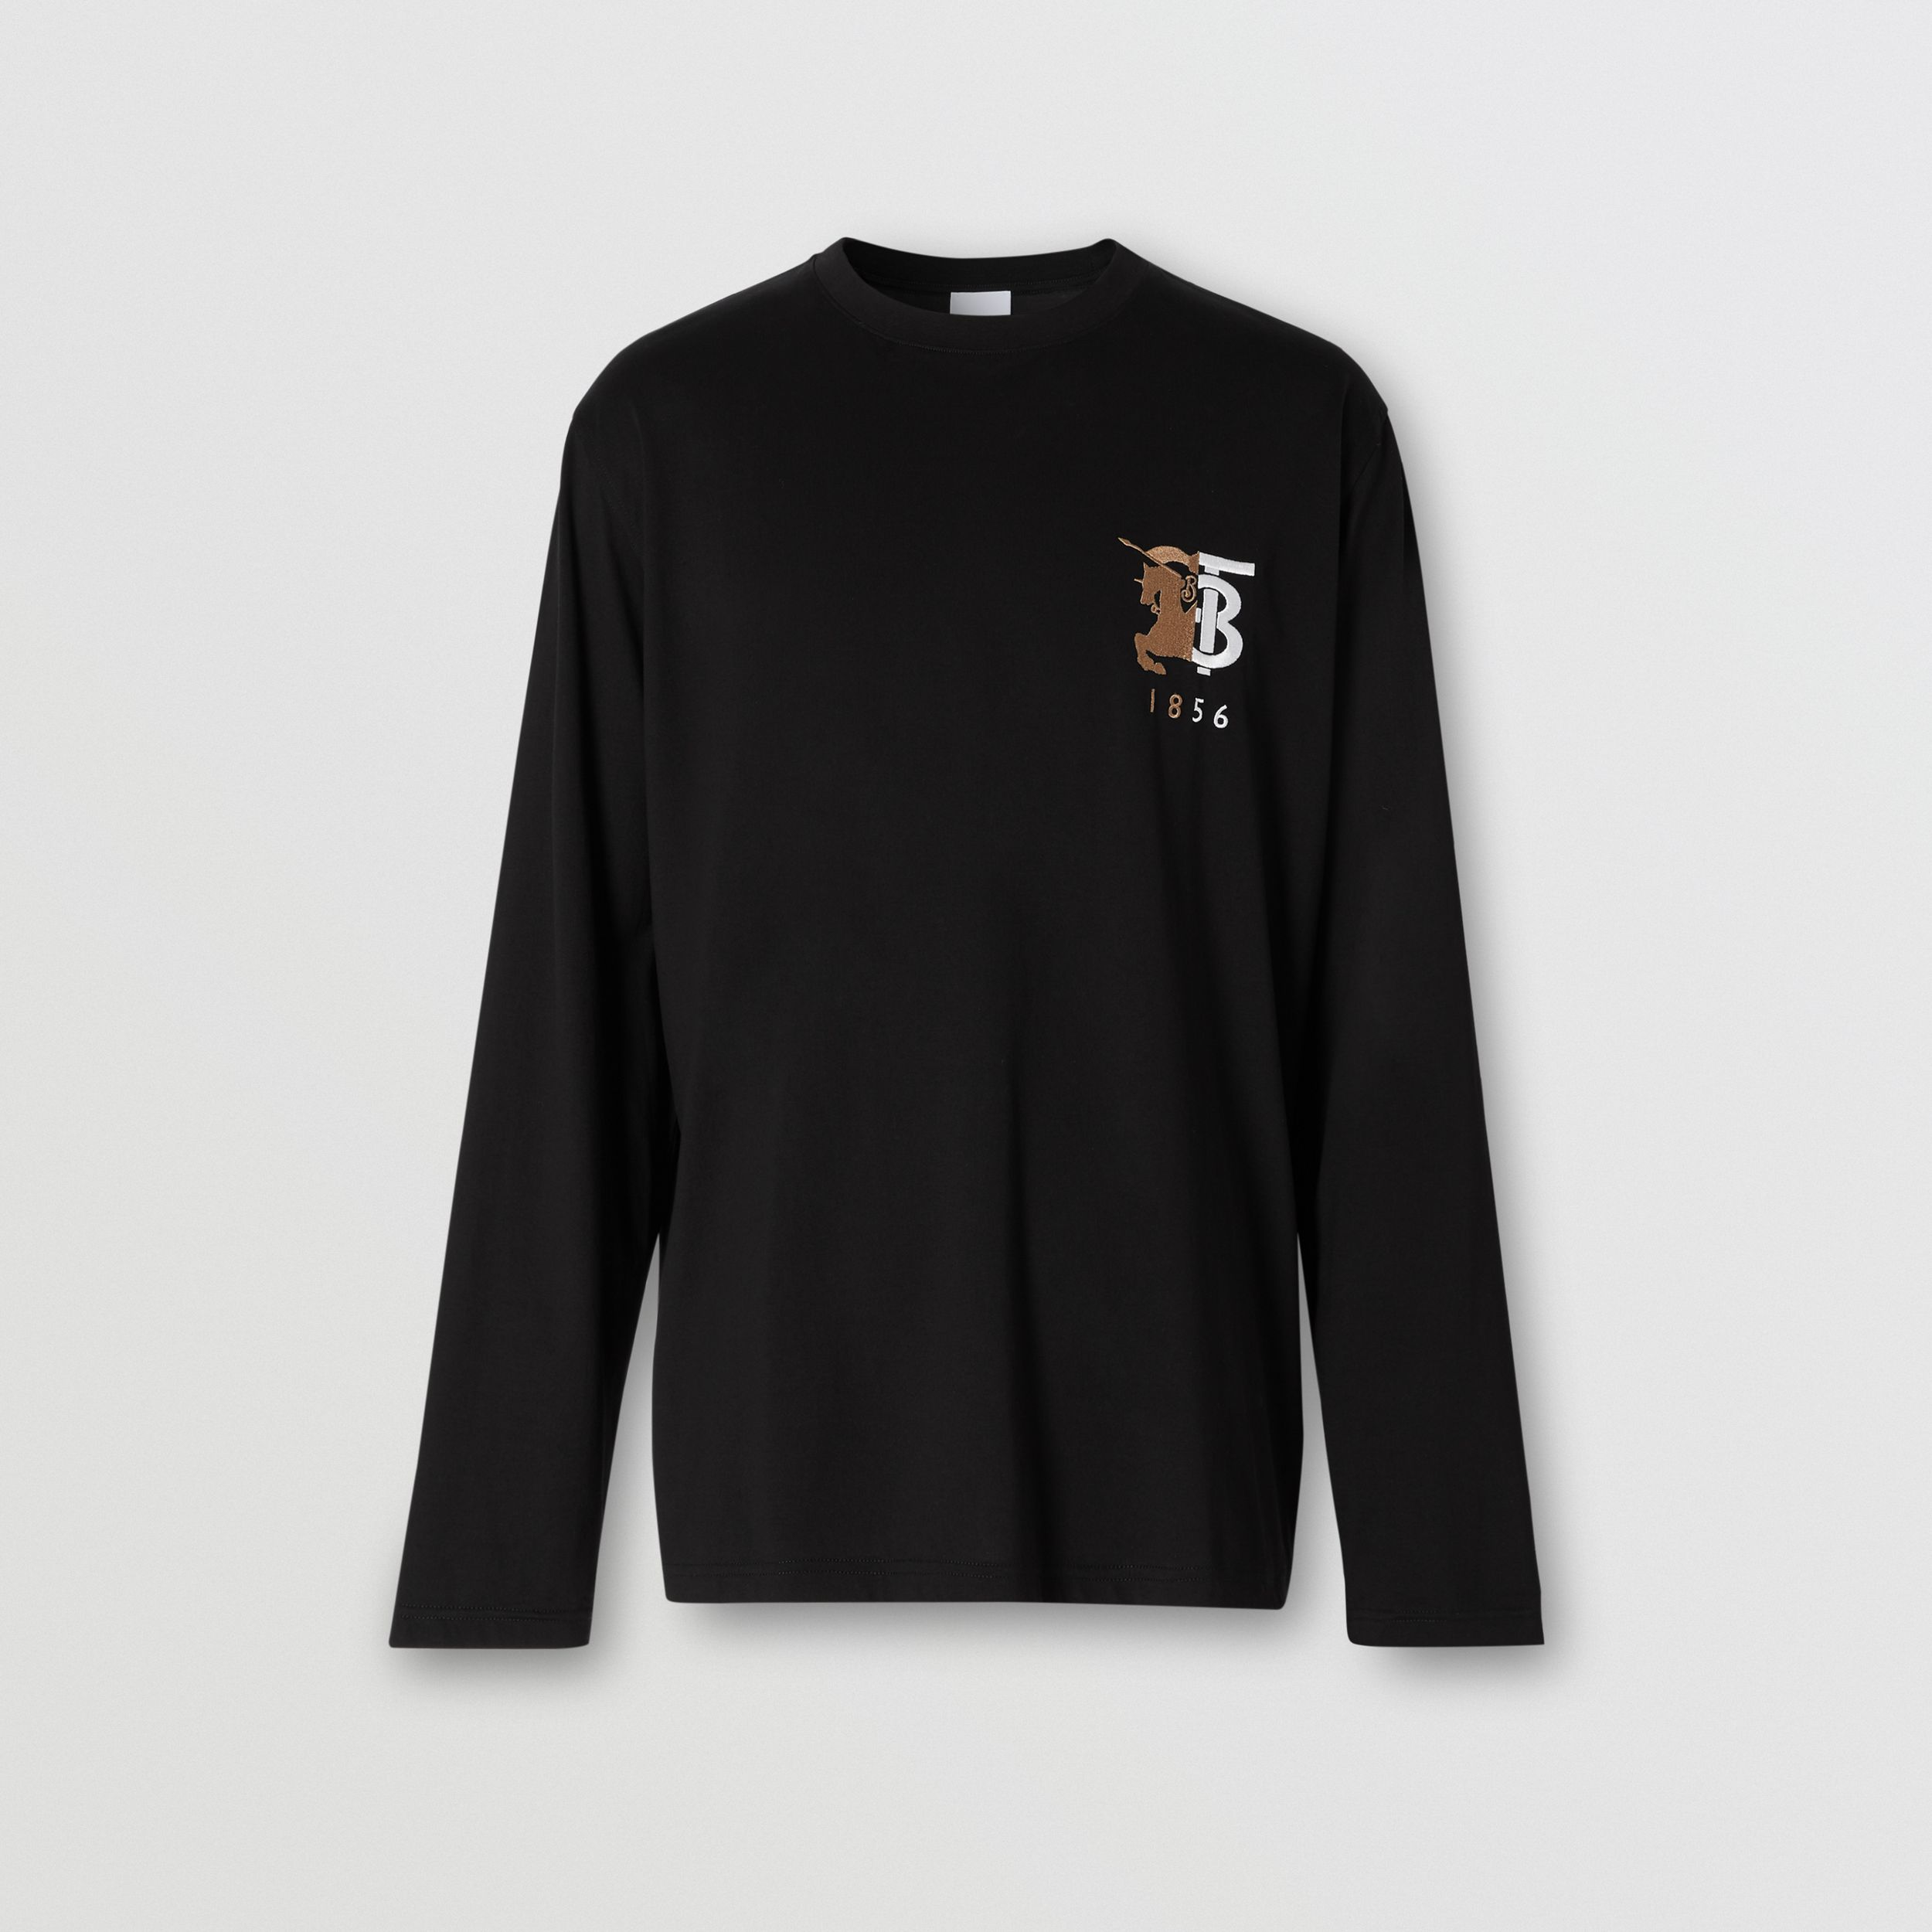 Long-sleeve Contrast Logo Graphic Cotton Top in Black - Men | Burberry United Kingdom - 4